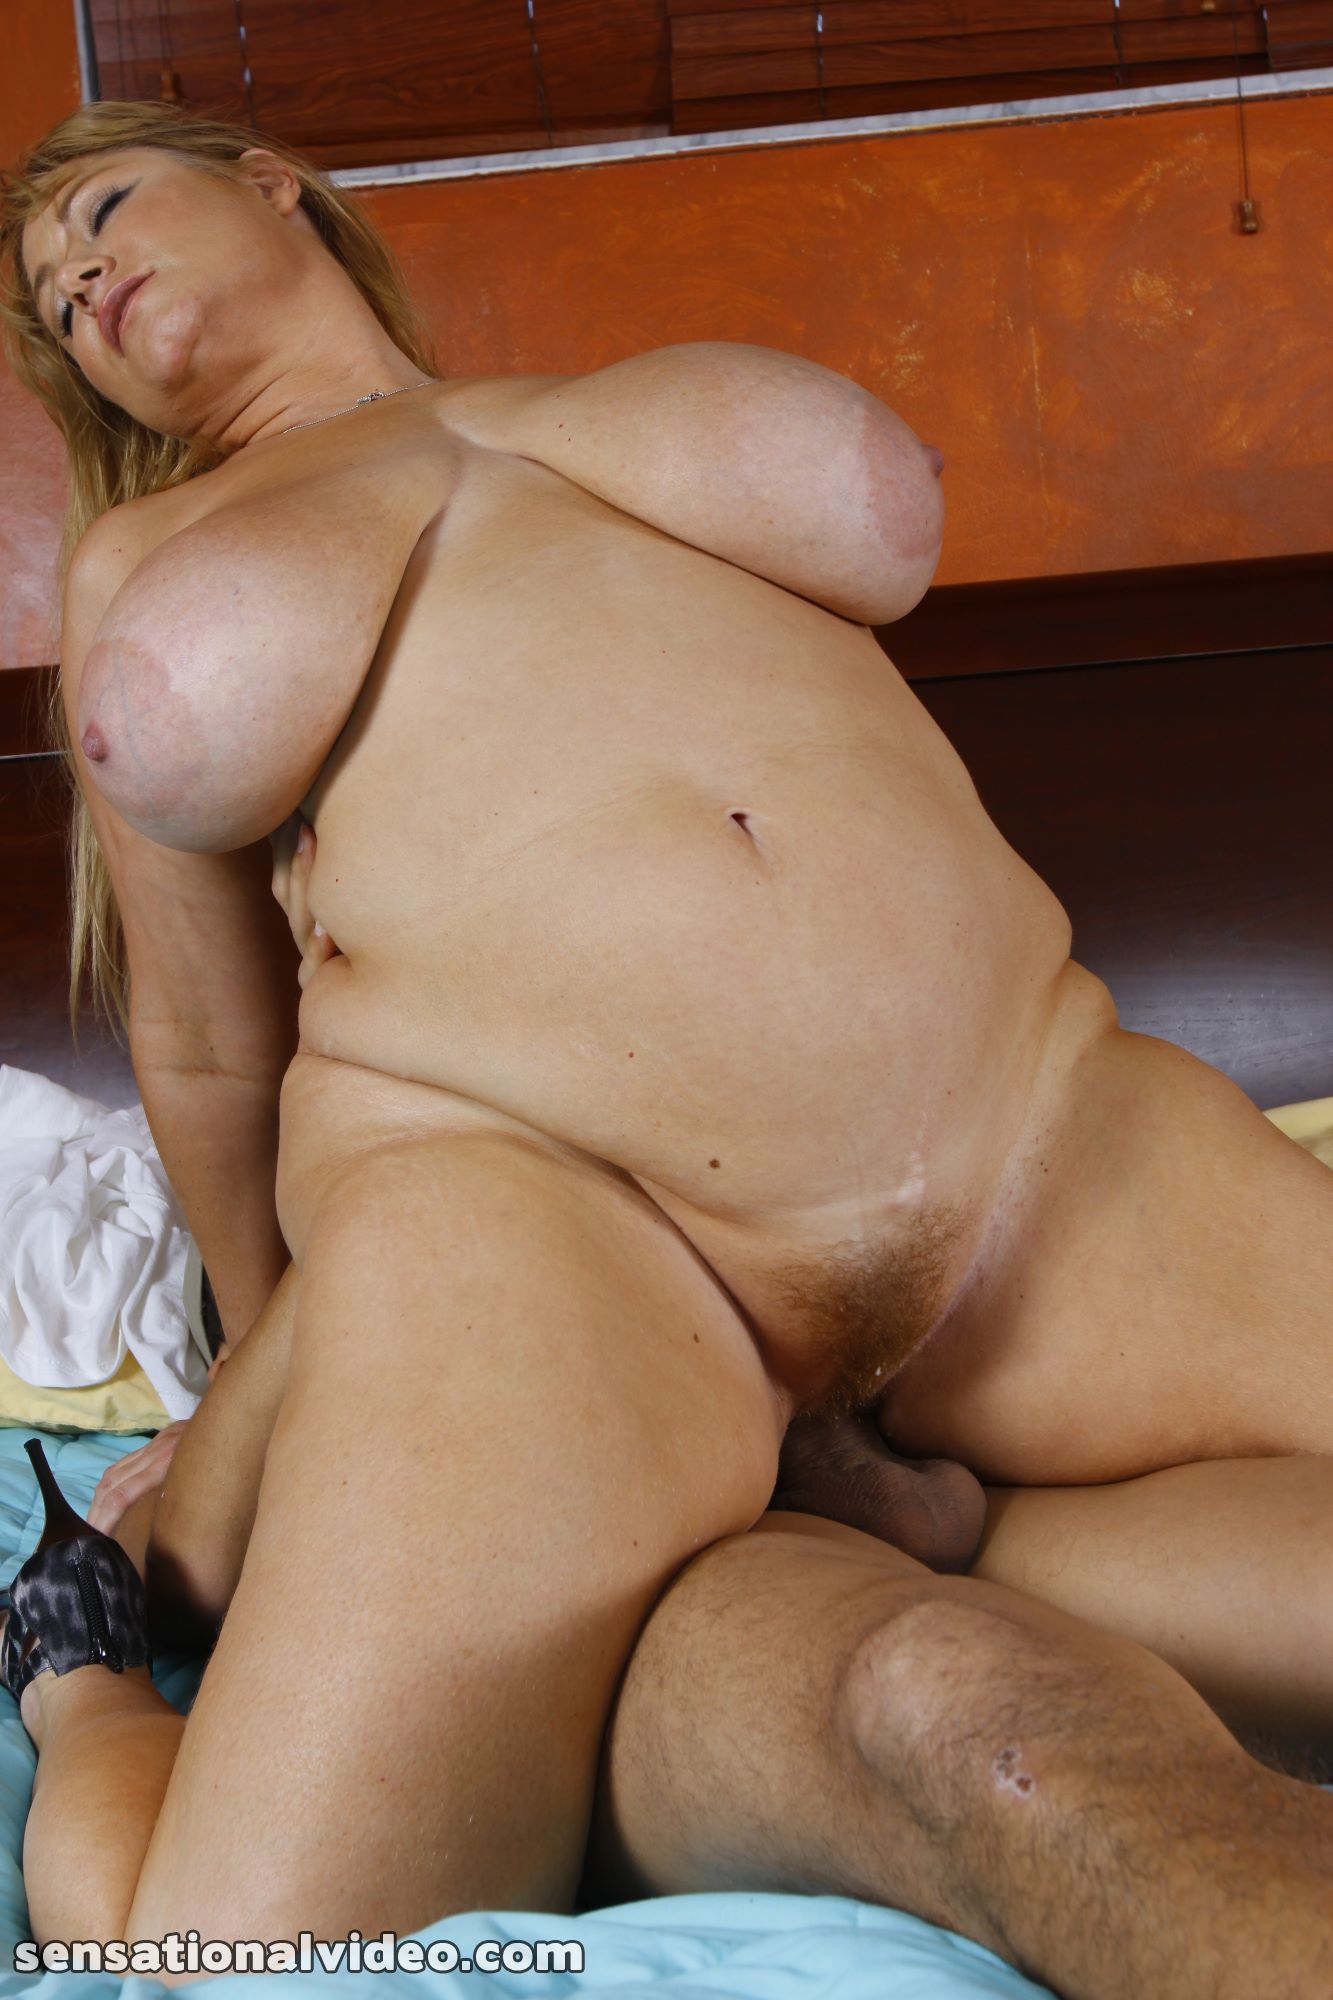 lesgalls spicytitties plumperpass gal538 pic 22